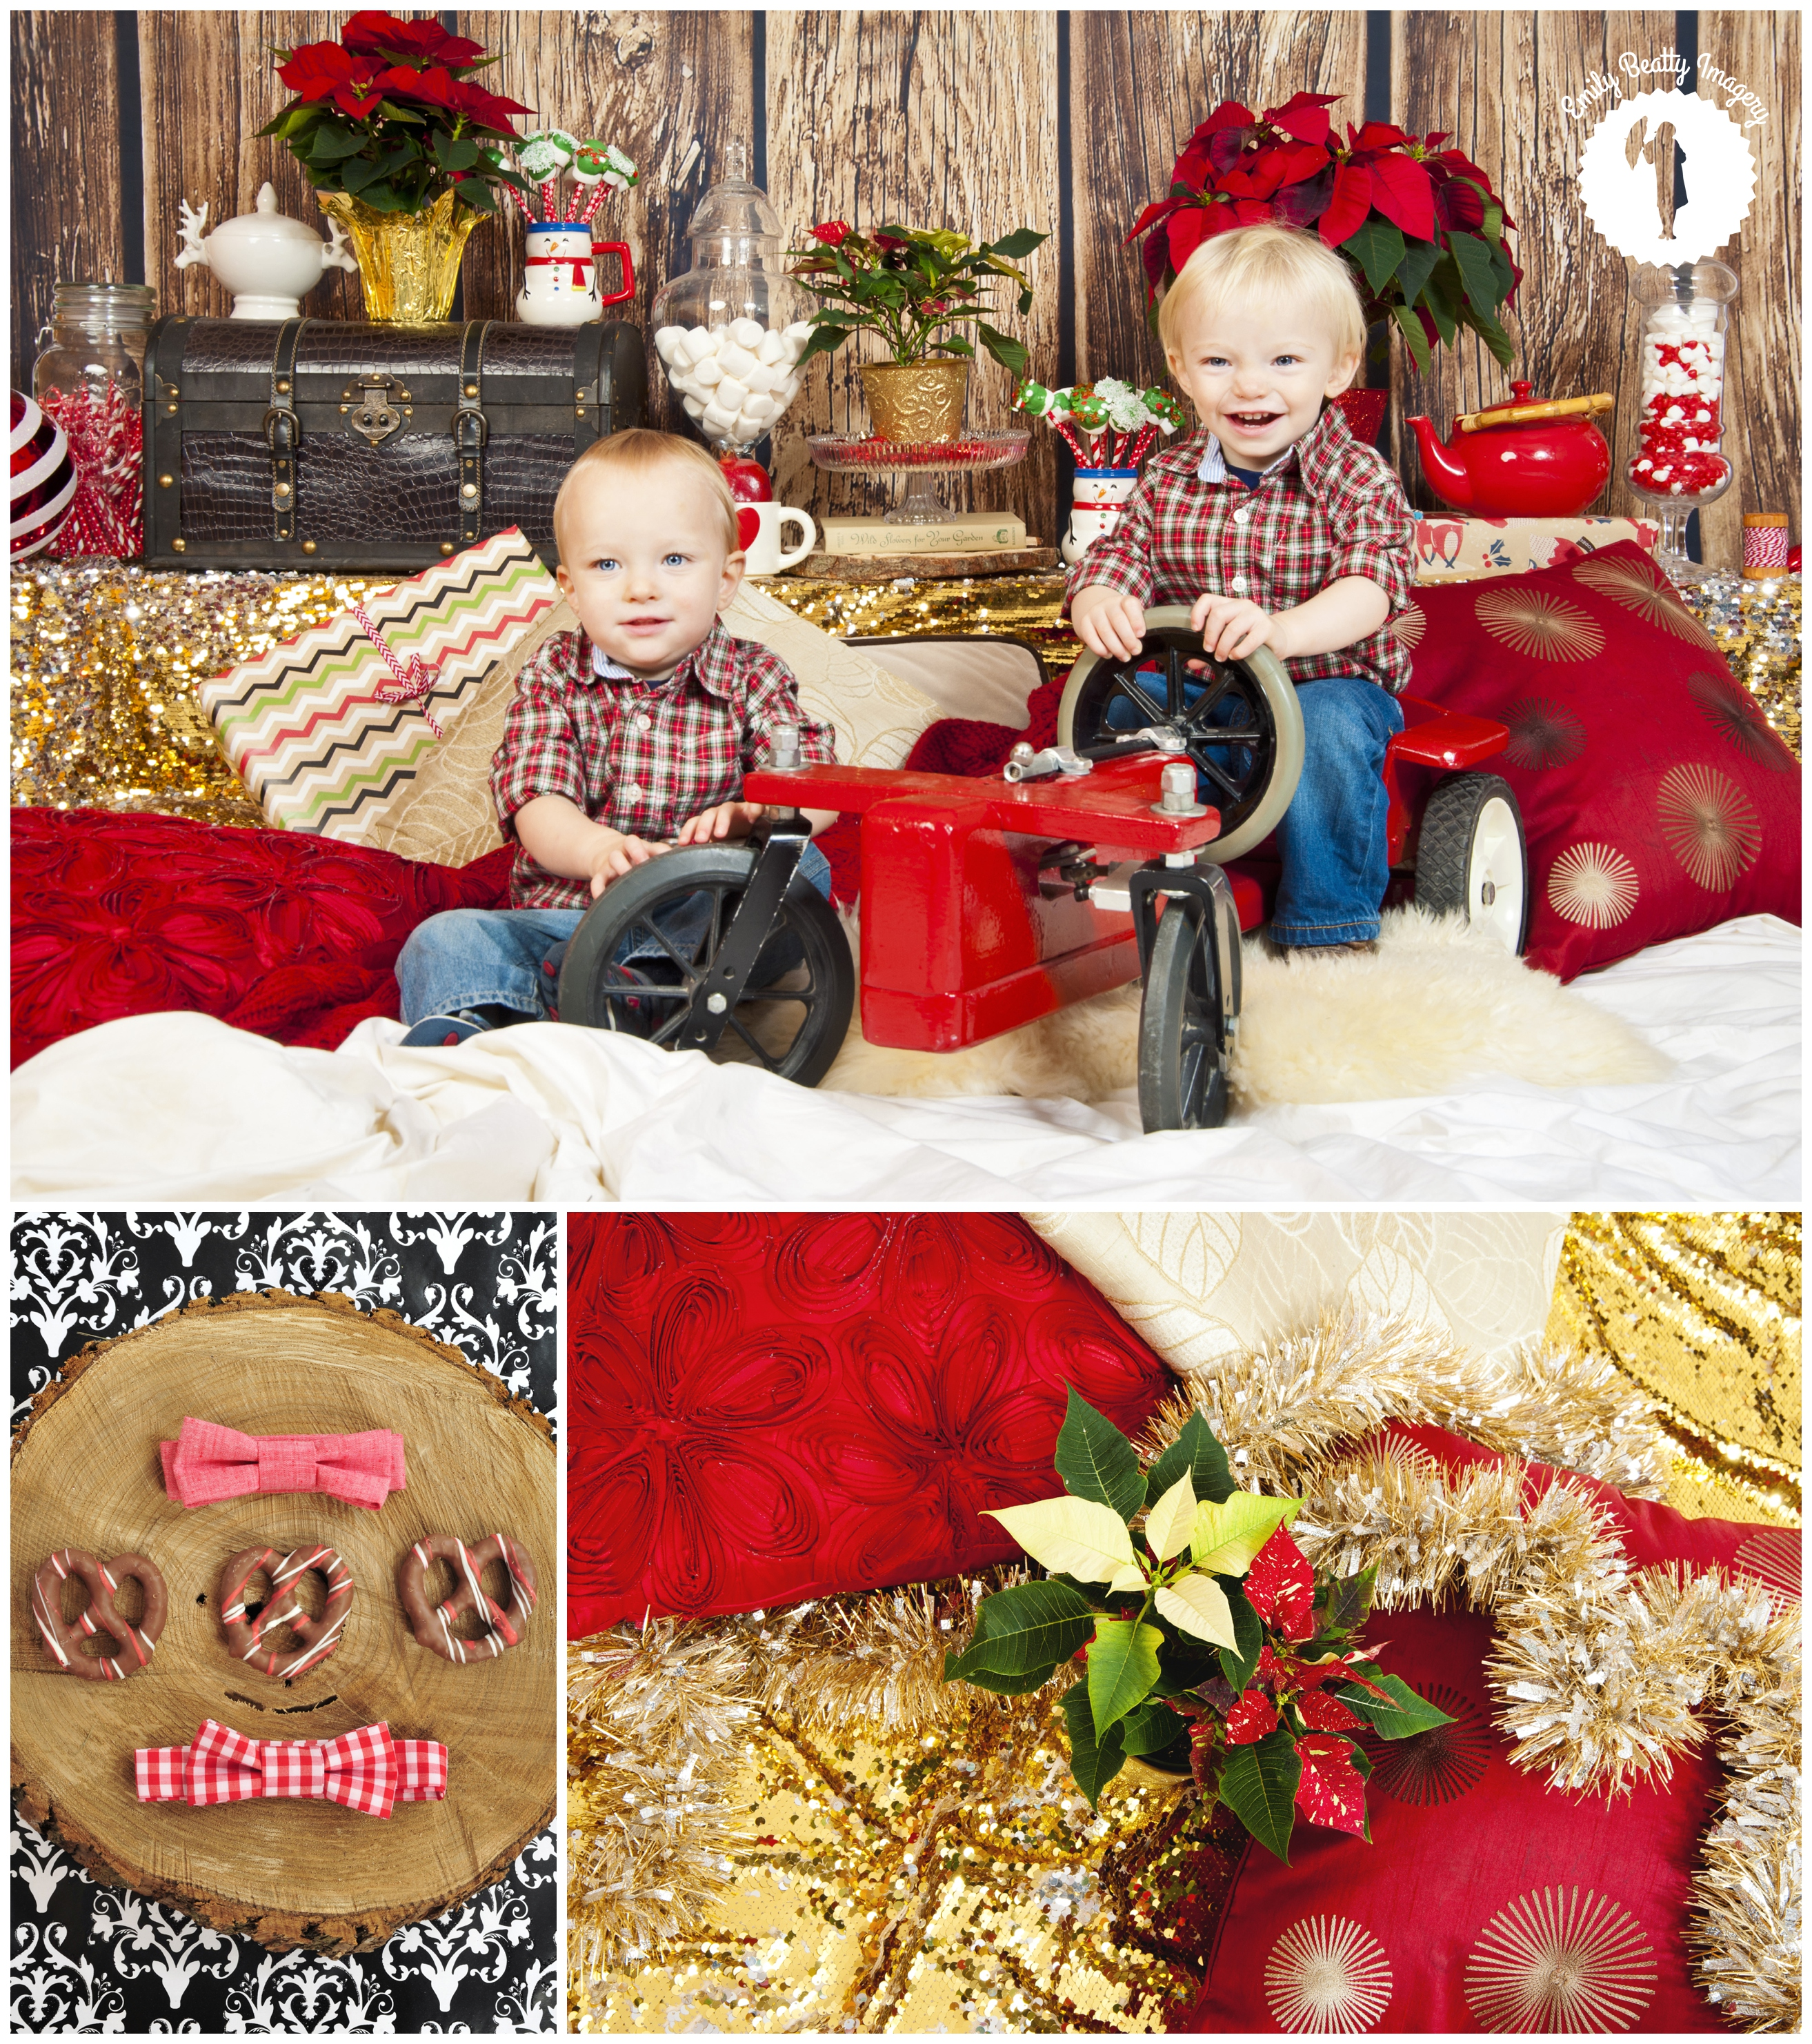 Emily_Beatty_Imagery_Christmas_Photo